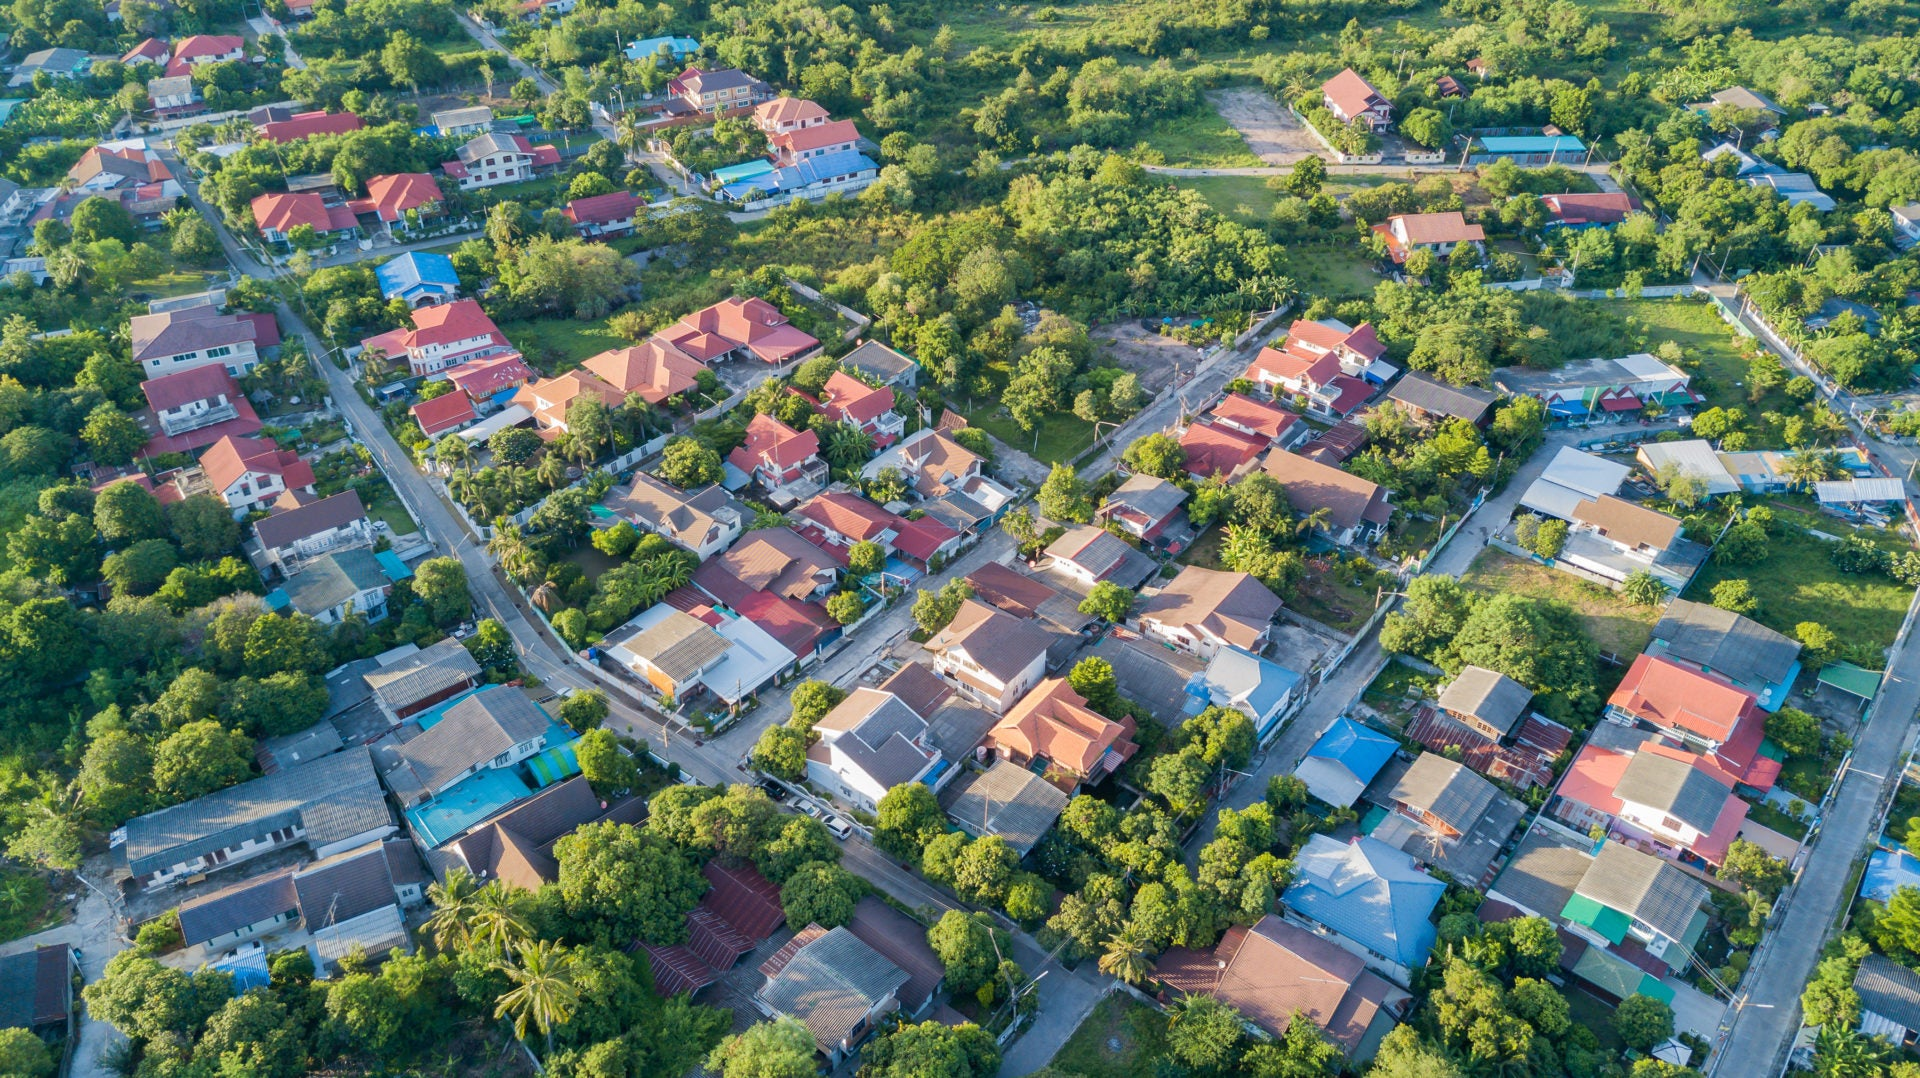 5 Free Online Tools to Check Neighborhood Safety image